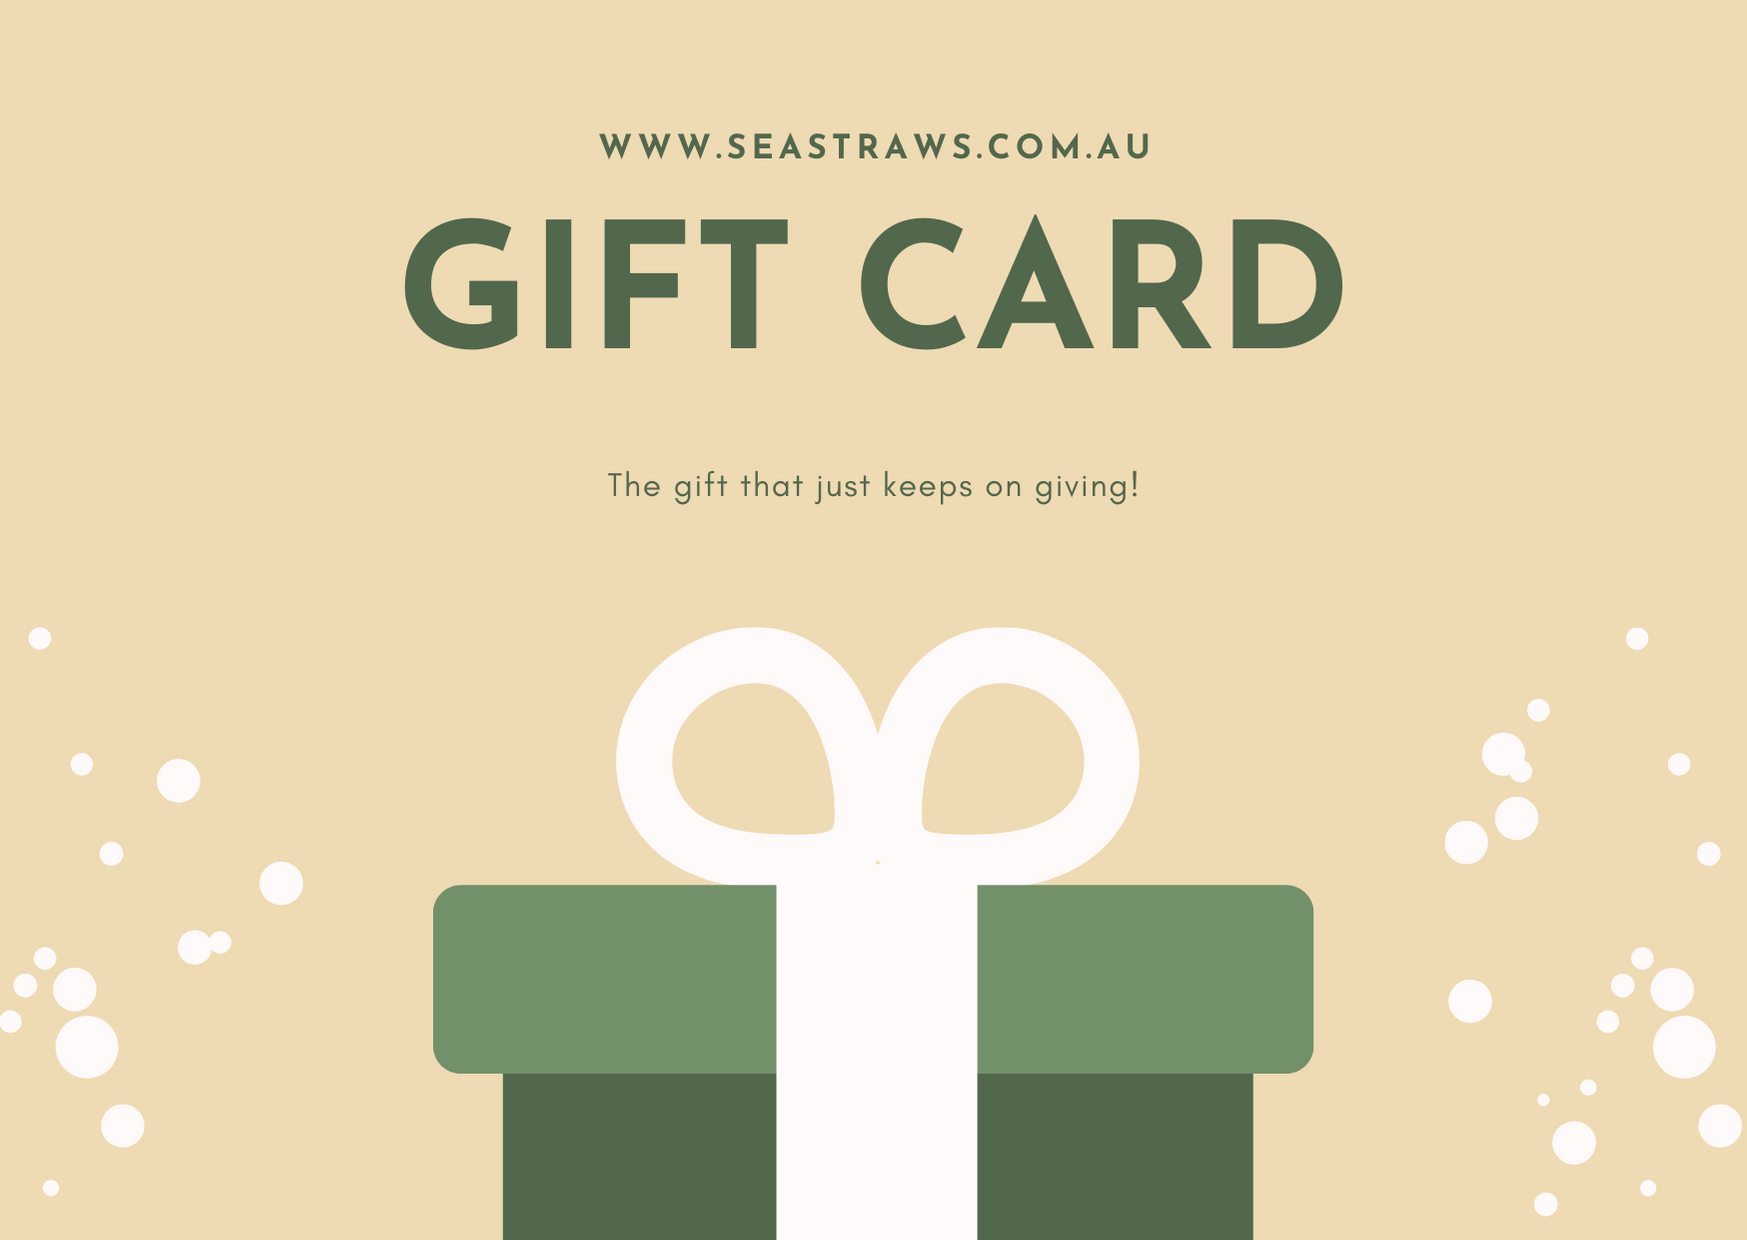 seastraws reusable glass straws gift card online store